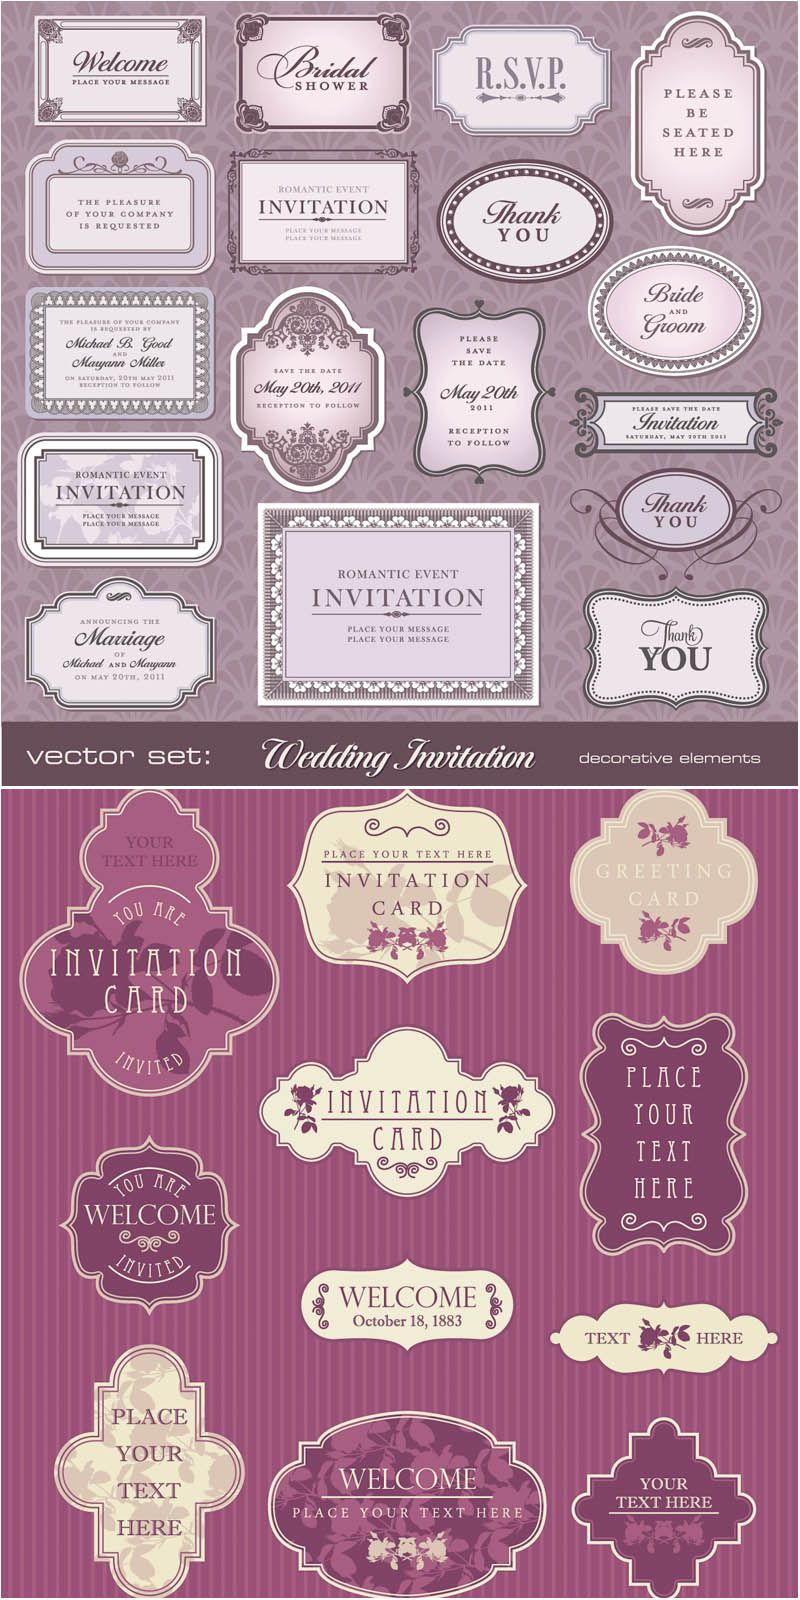 Retro decorative invitation card designs vector vector design art 28 design elements of vector retro decorative wedding invitation card designs with vintage embellishments frames and labels for your text decorated with junglespirit Choice Image